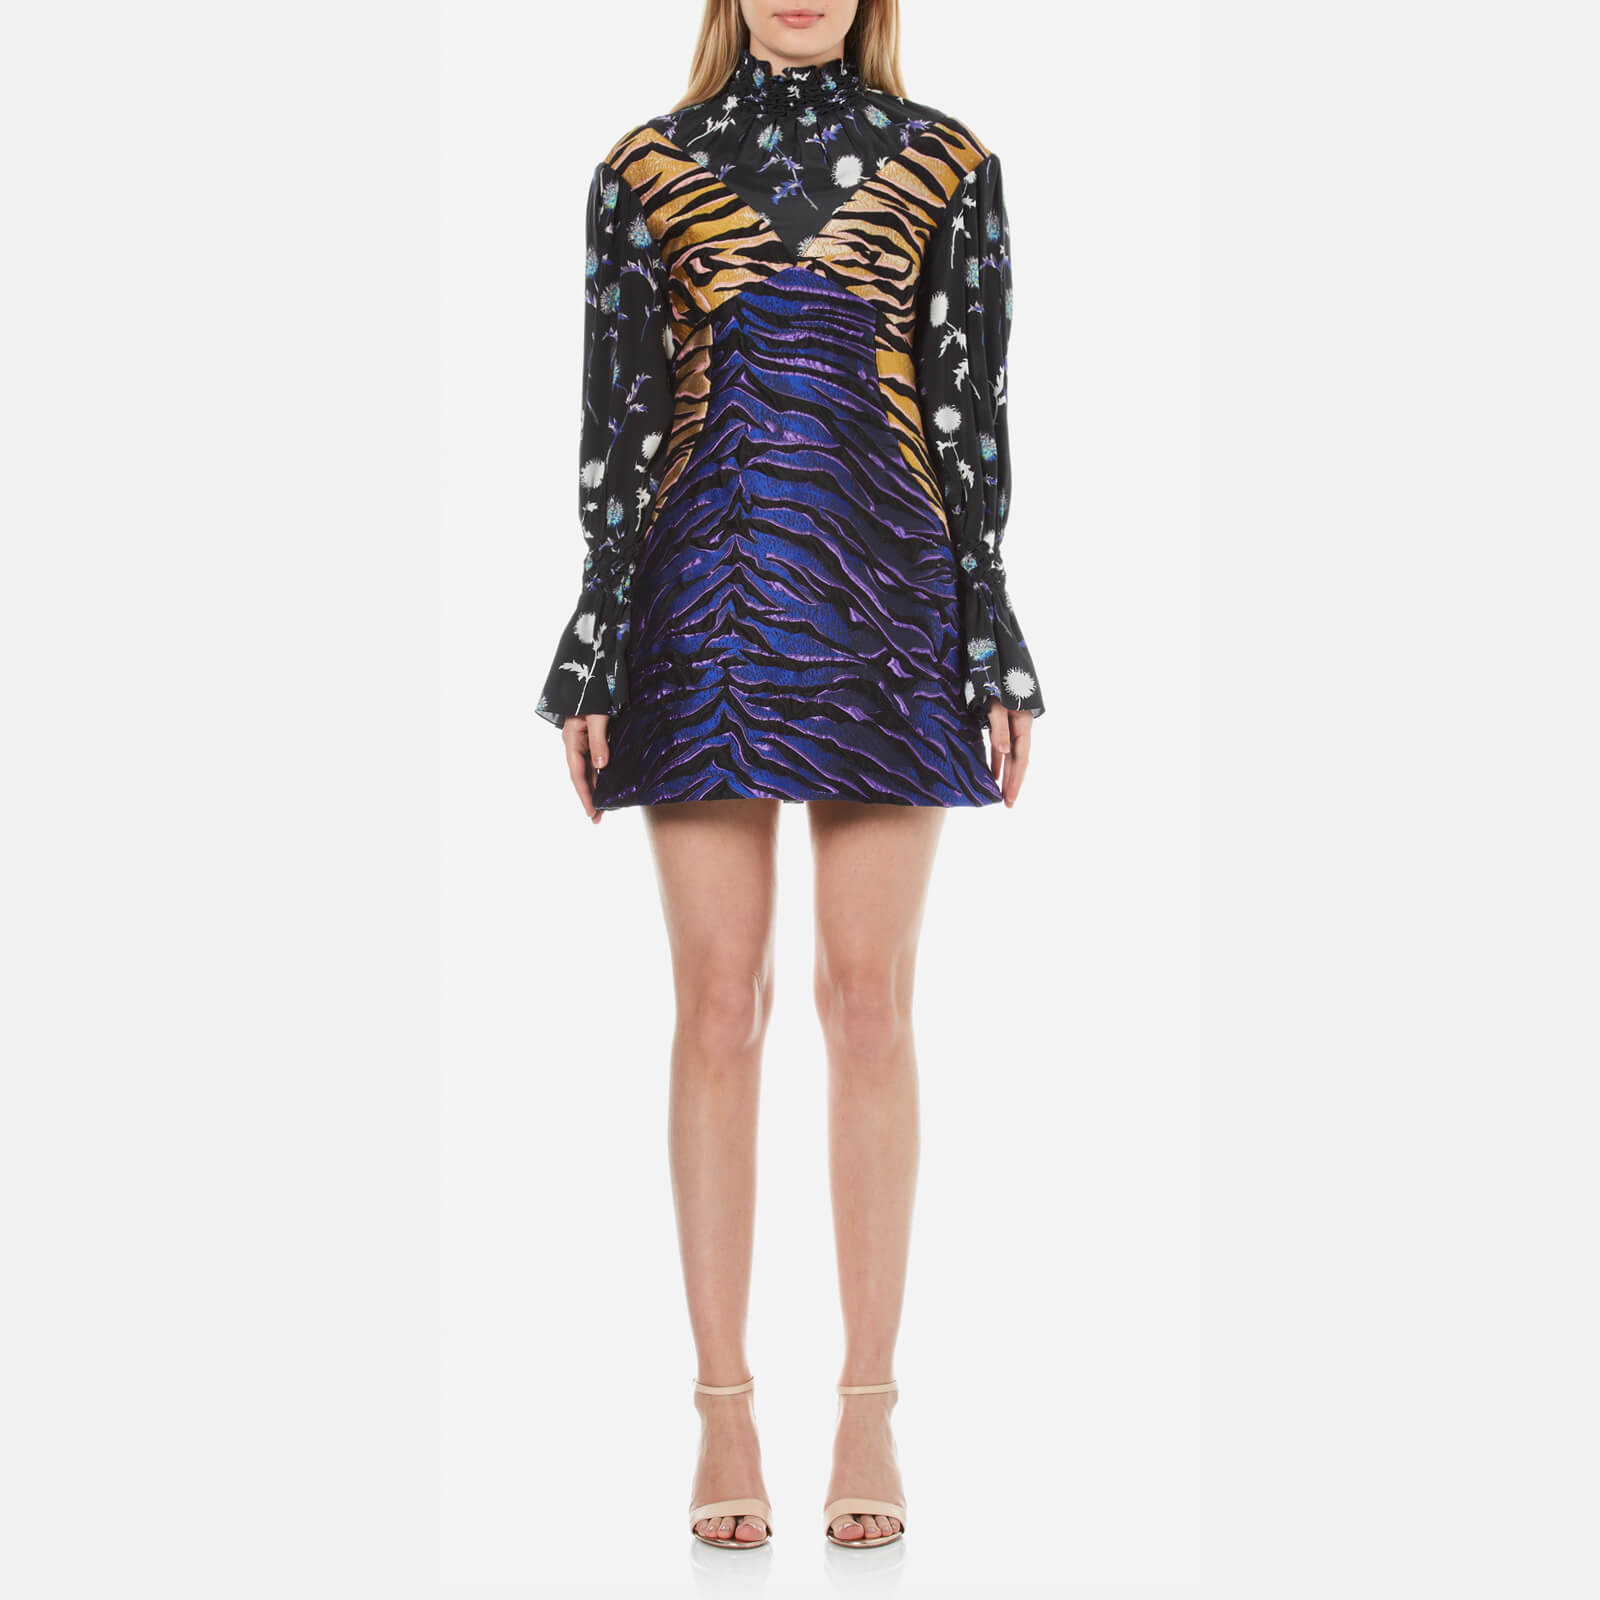 ab2d087b KENZO Women's Tiger Stripes Jacquard and Floral Mix Dress - Midnight Blue -  Free UK Delivery over £50